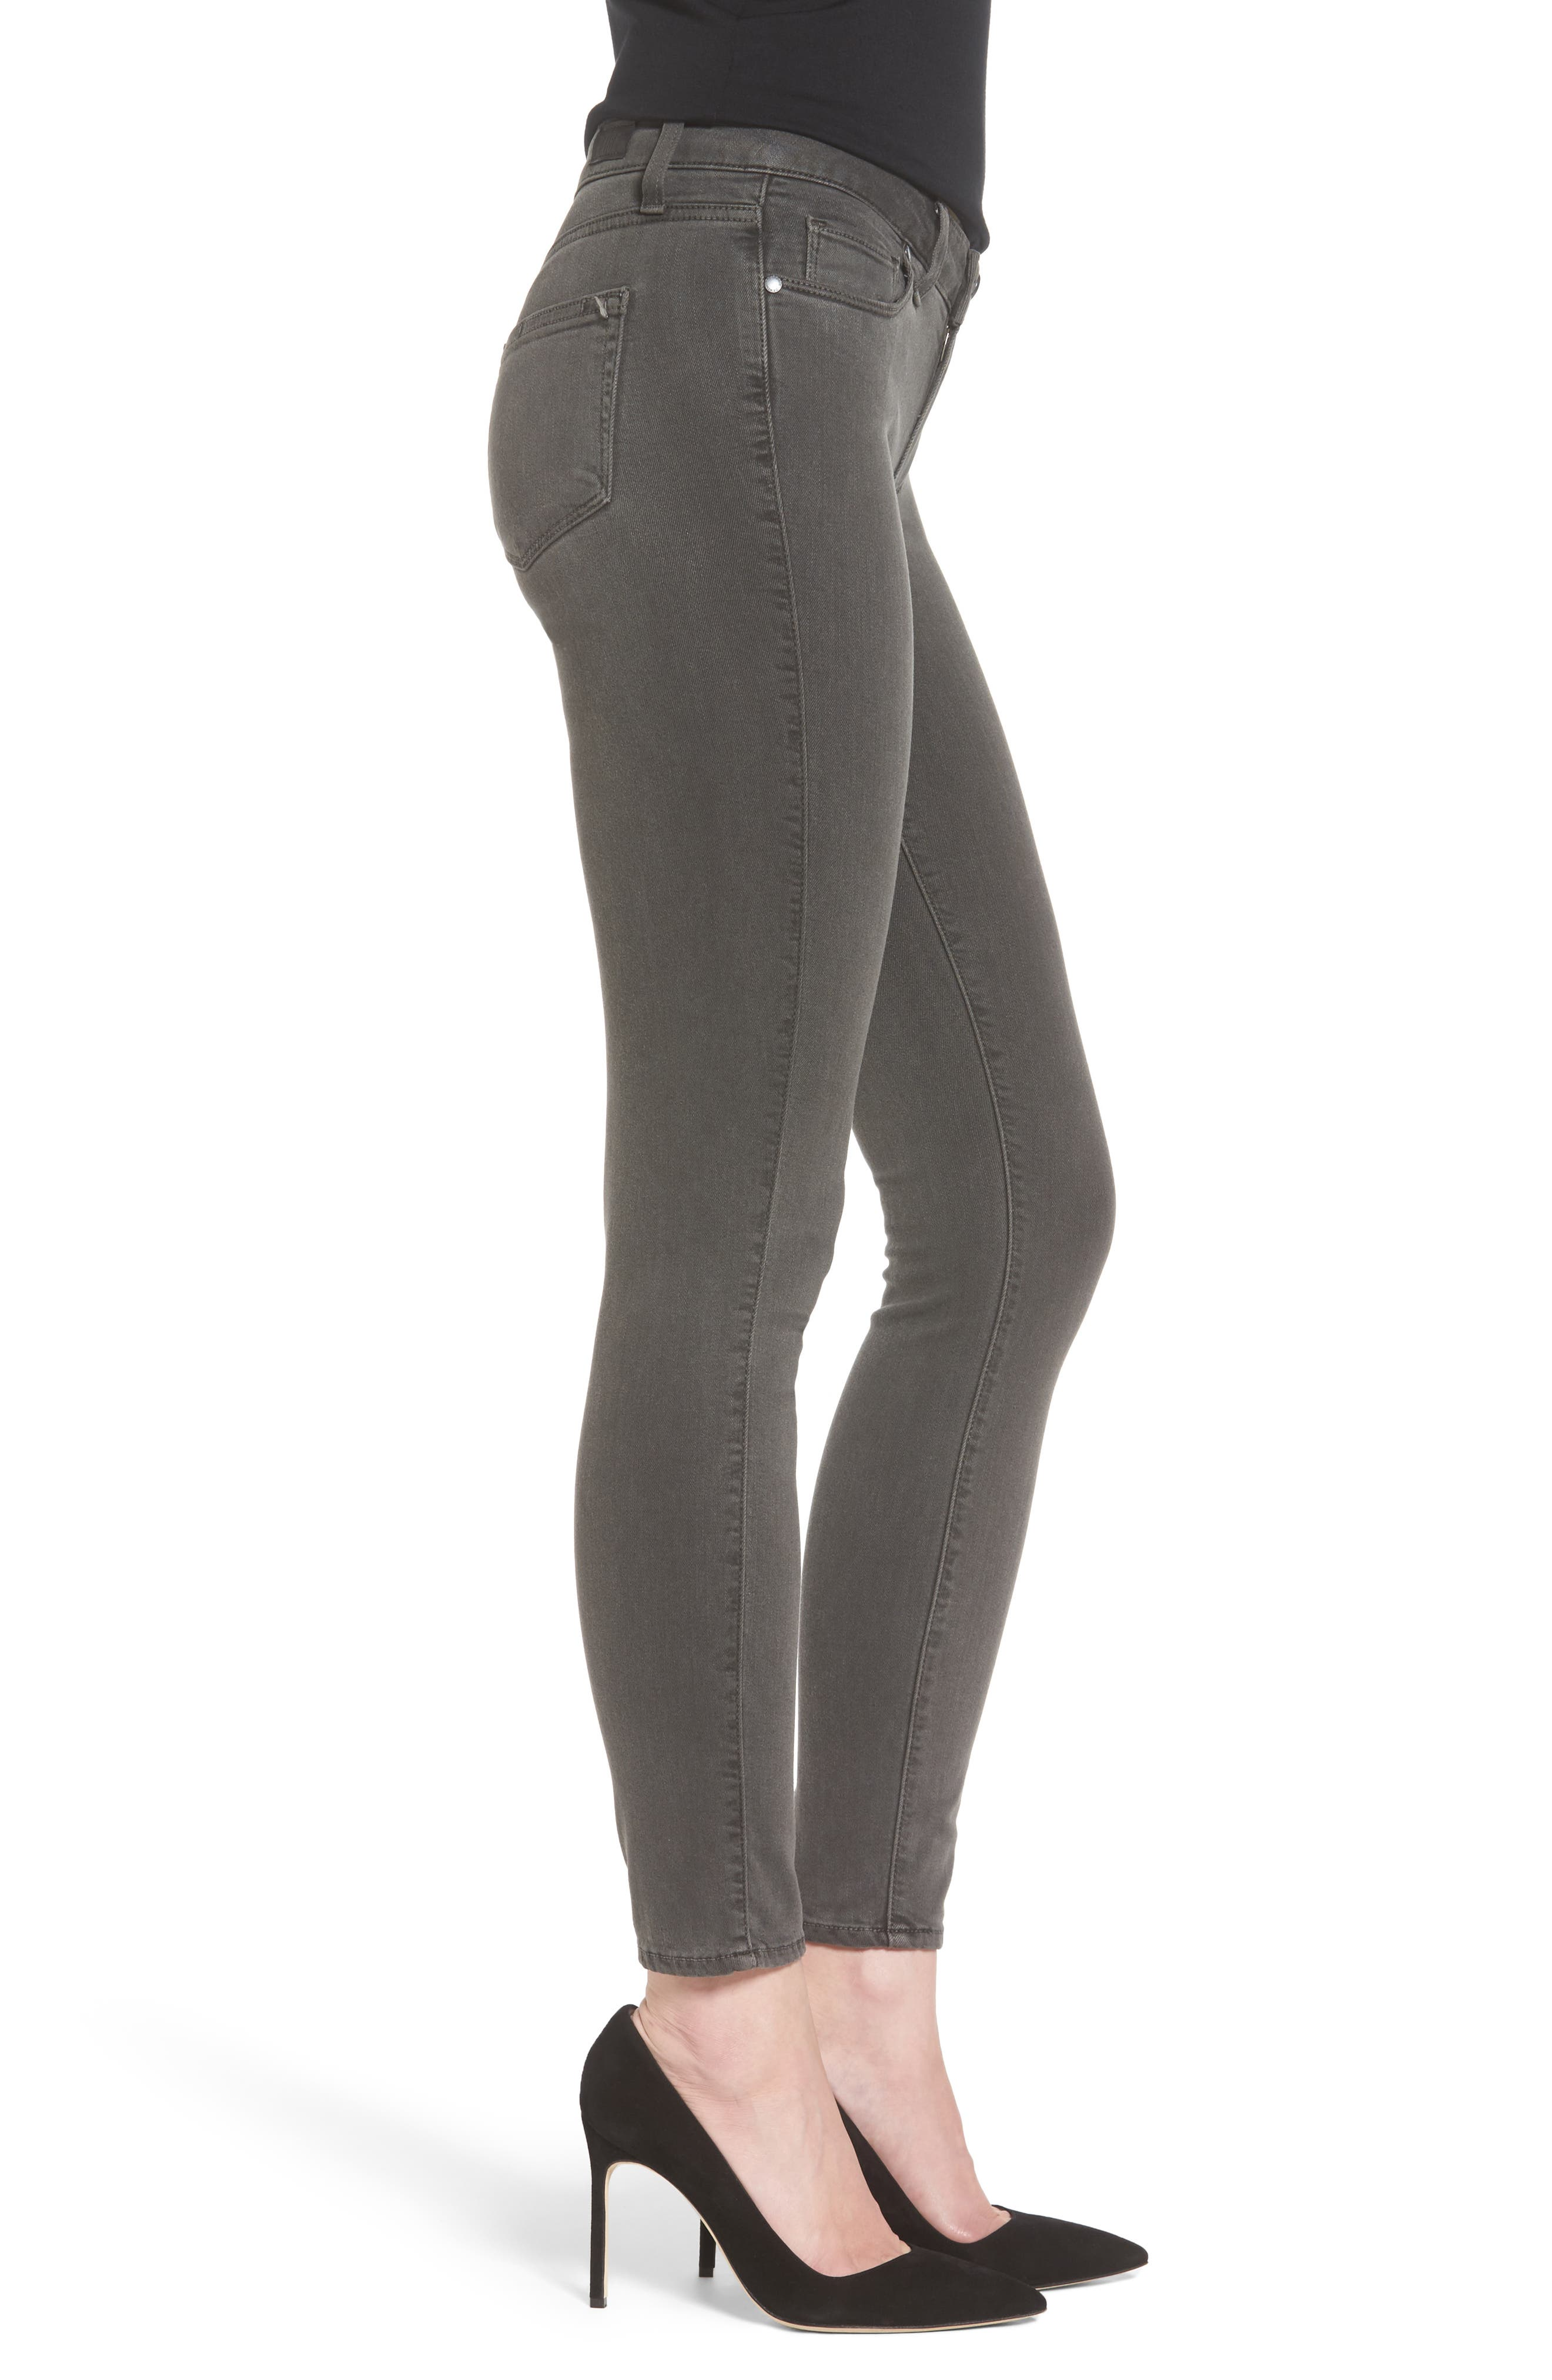 PAIGE, Transcend - Verdugo Ankle Skinny Jeans, Alternate thumbnail 3, color, 021